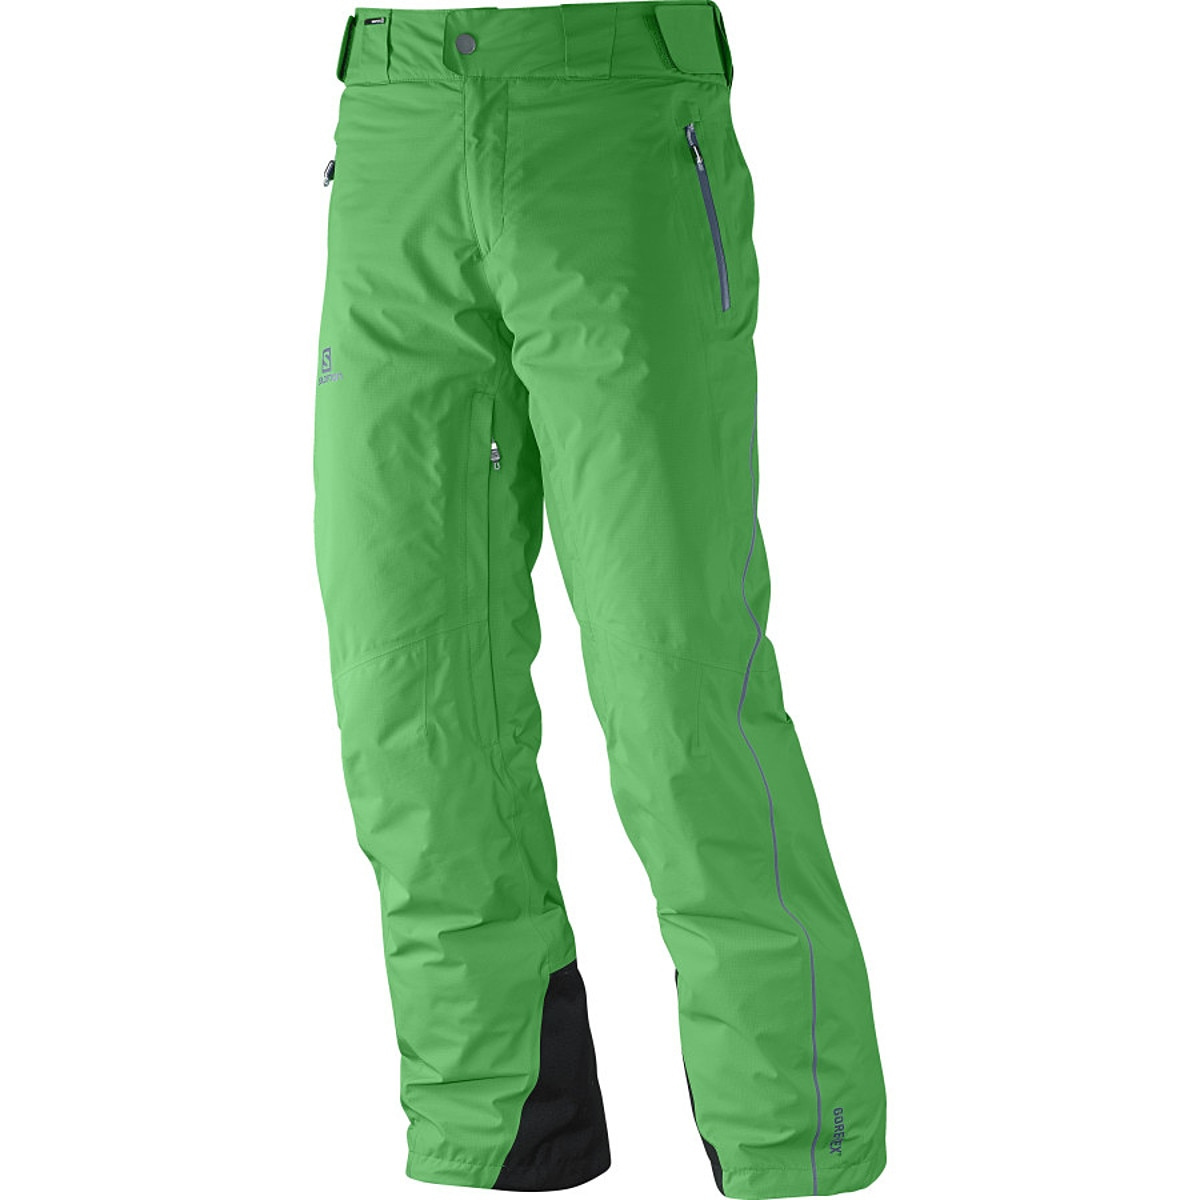 Salomon Whitemount GTX Motion Fit Pant